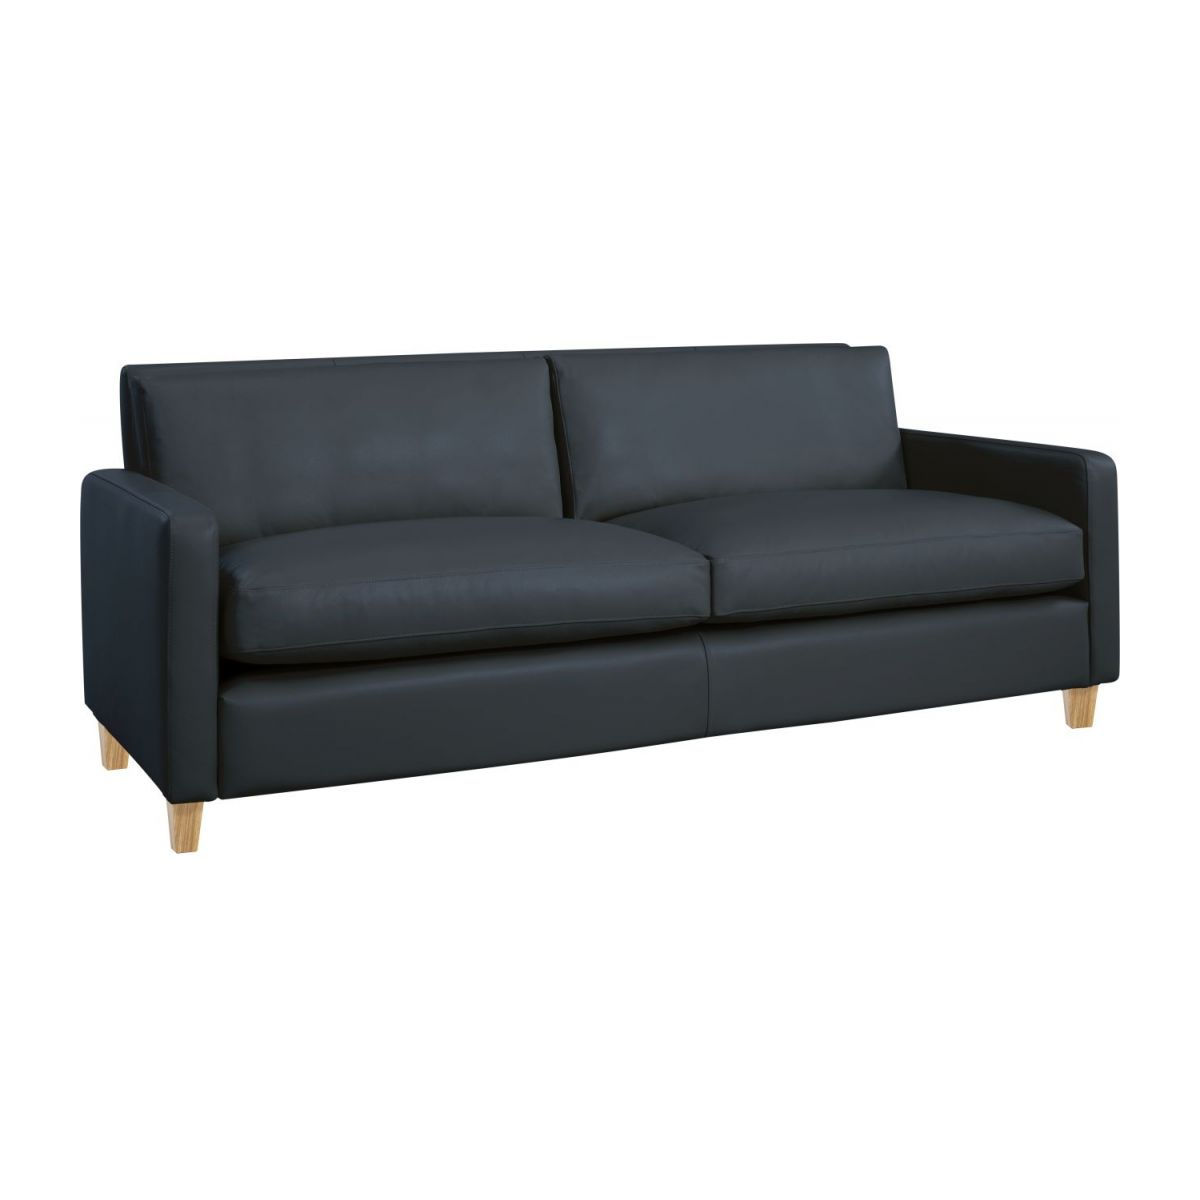 3 seat leather sofa n°1